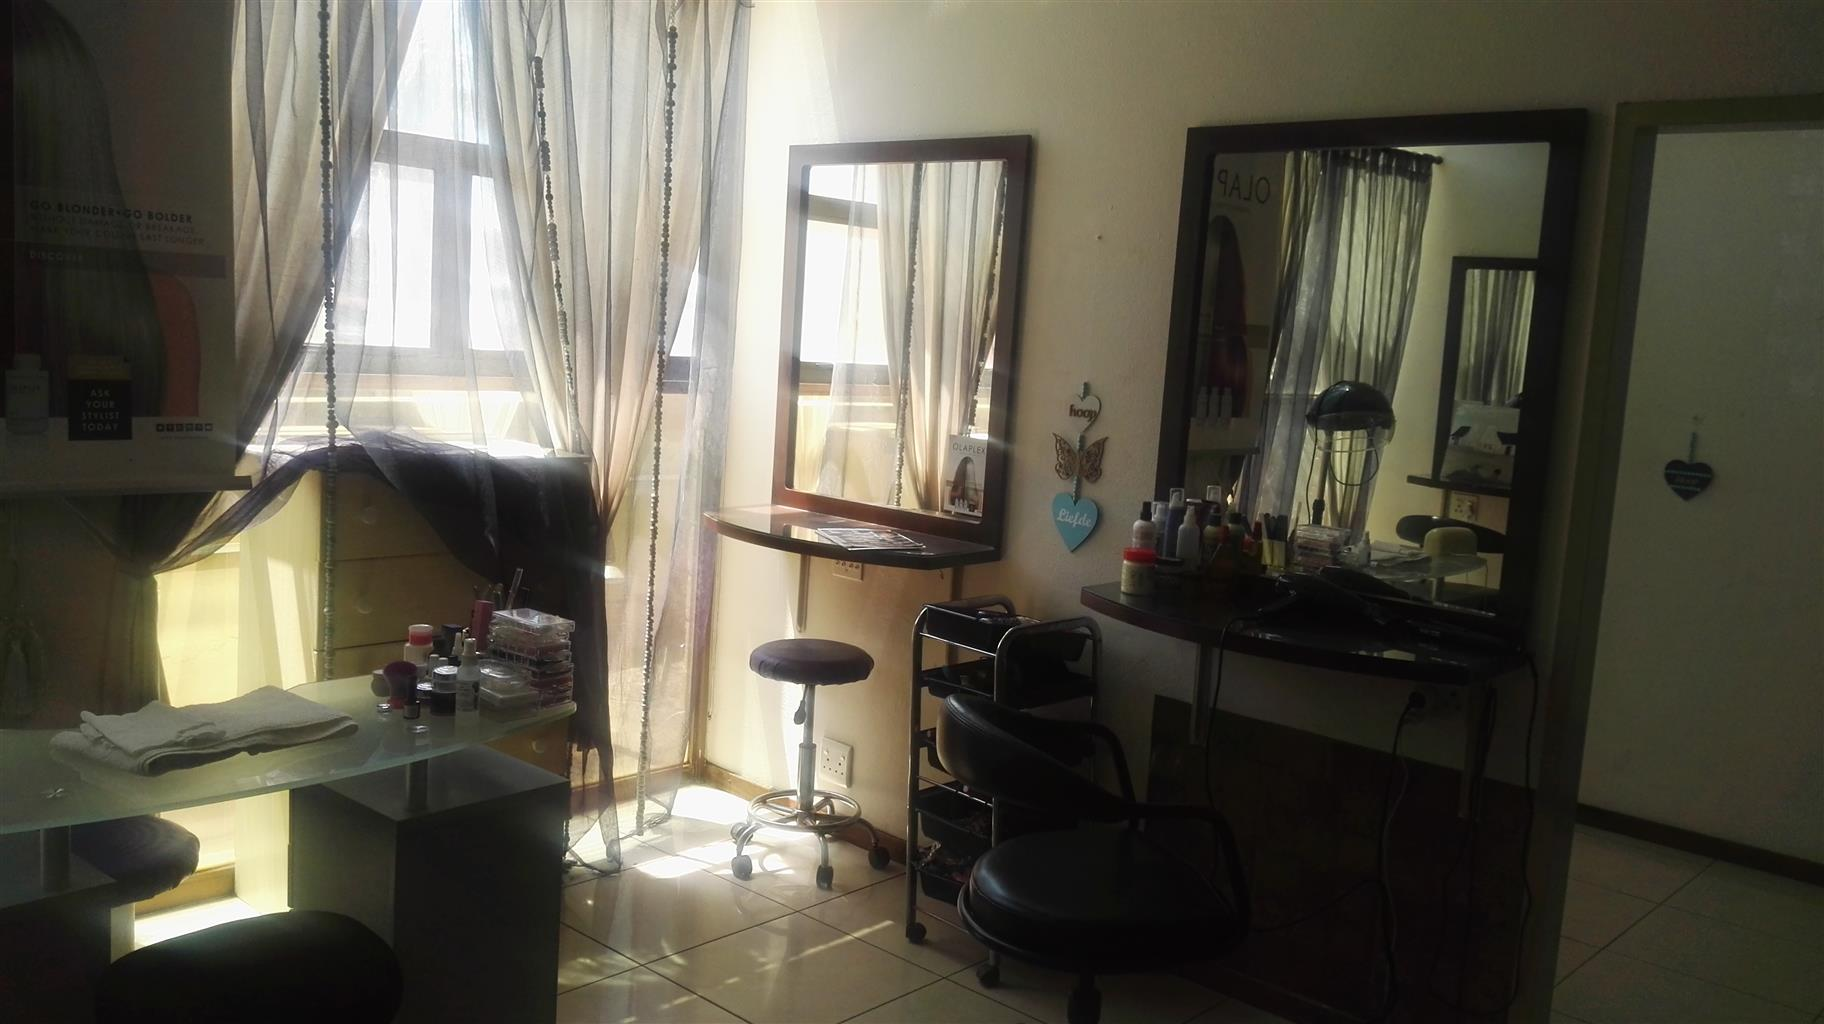 A beauty salon for sale